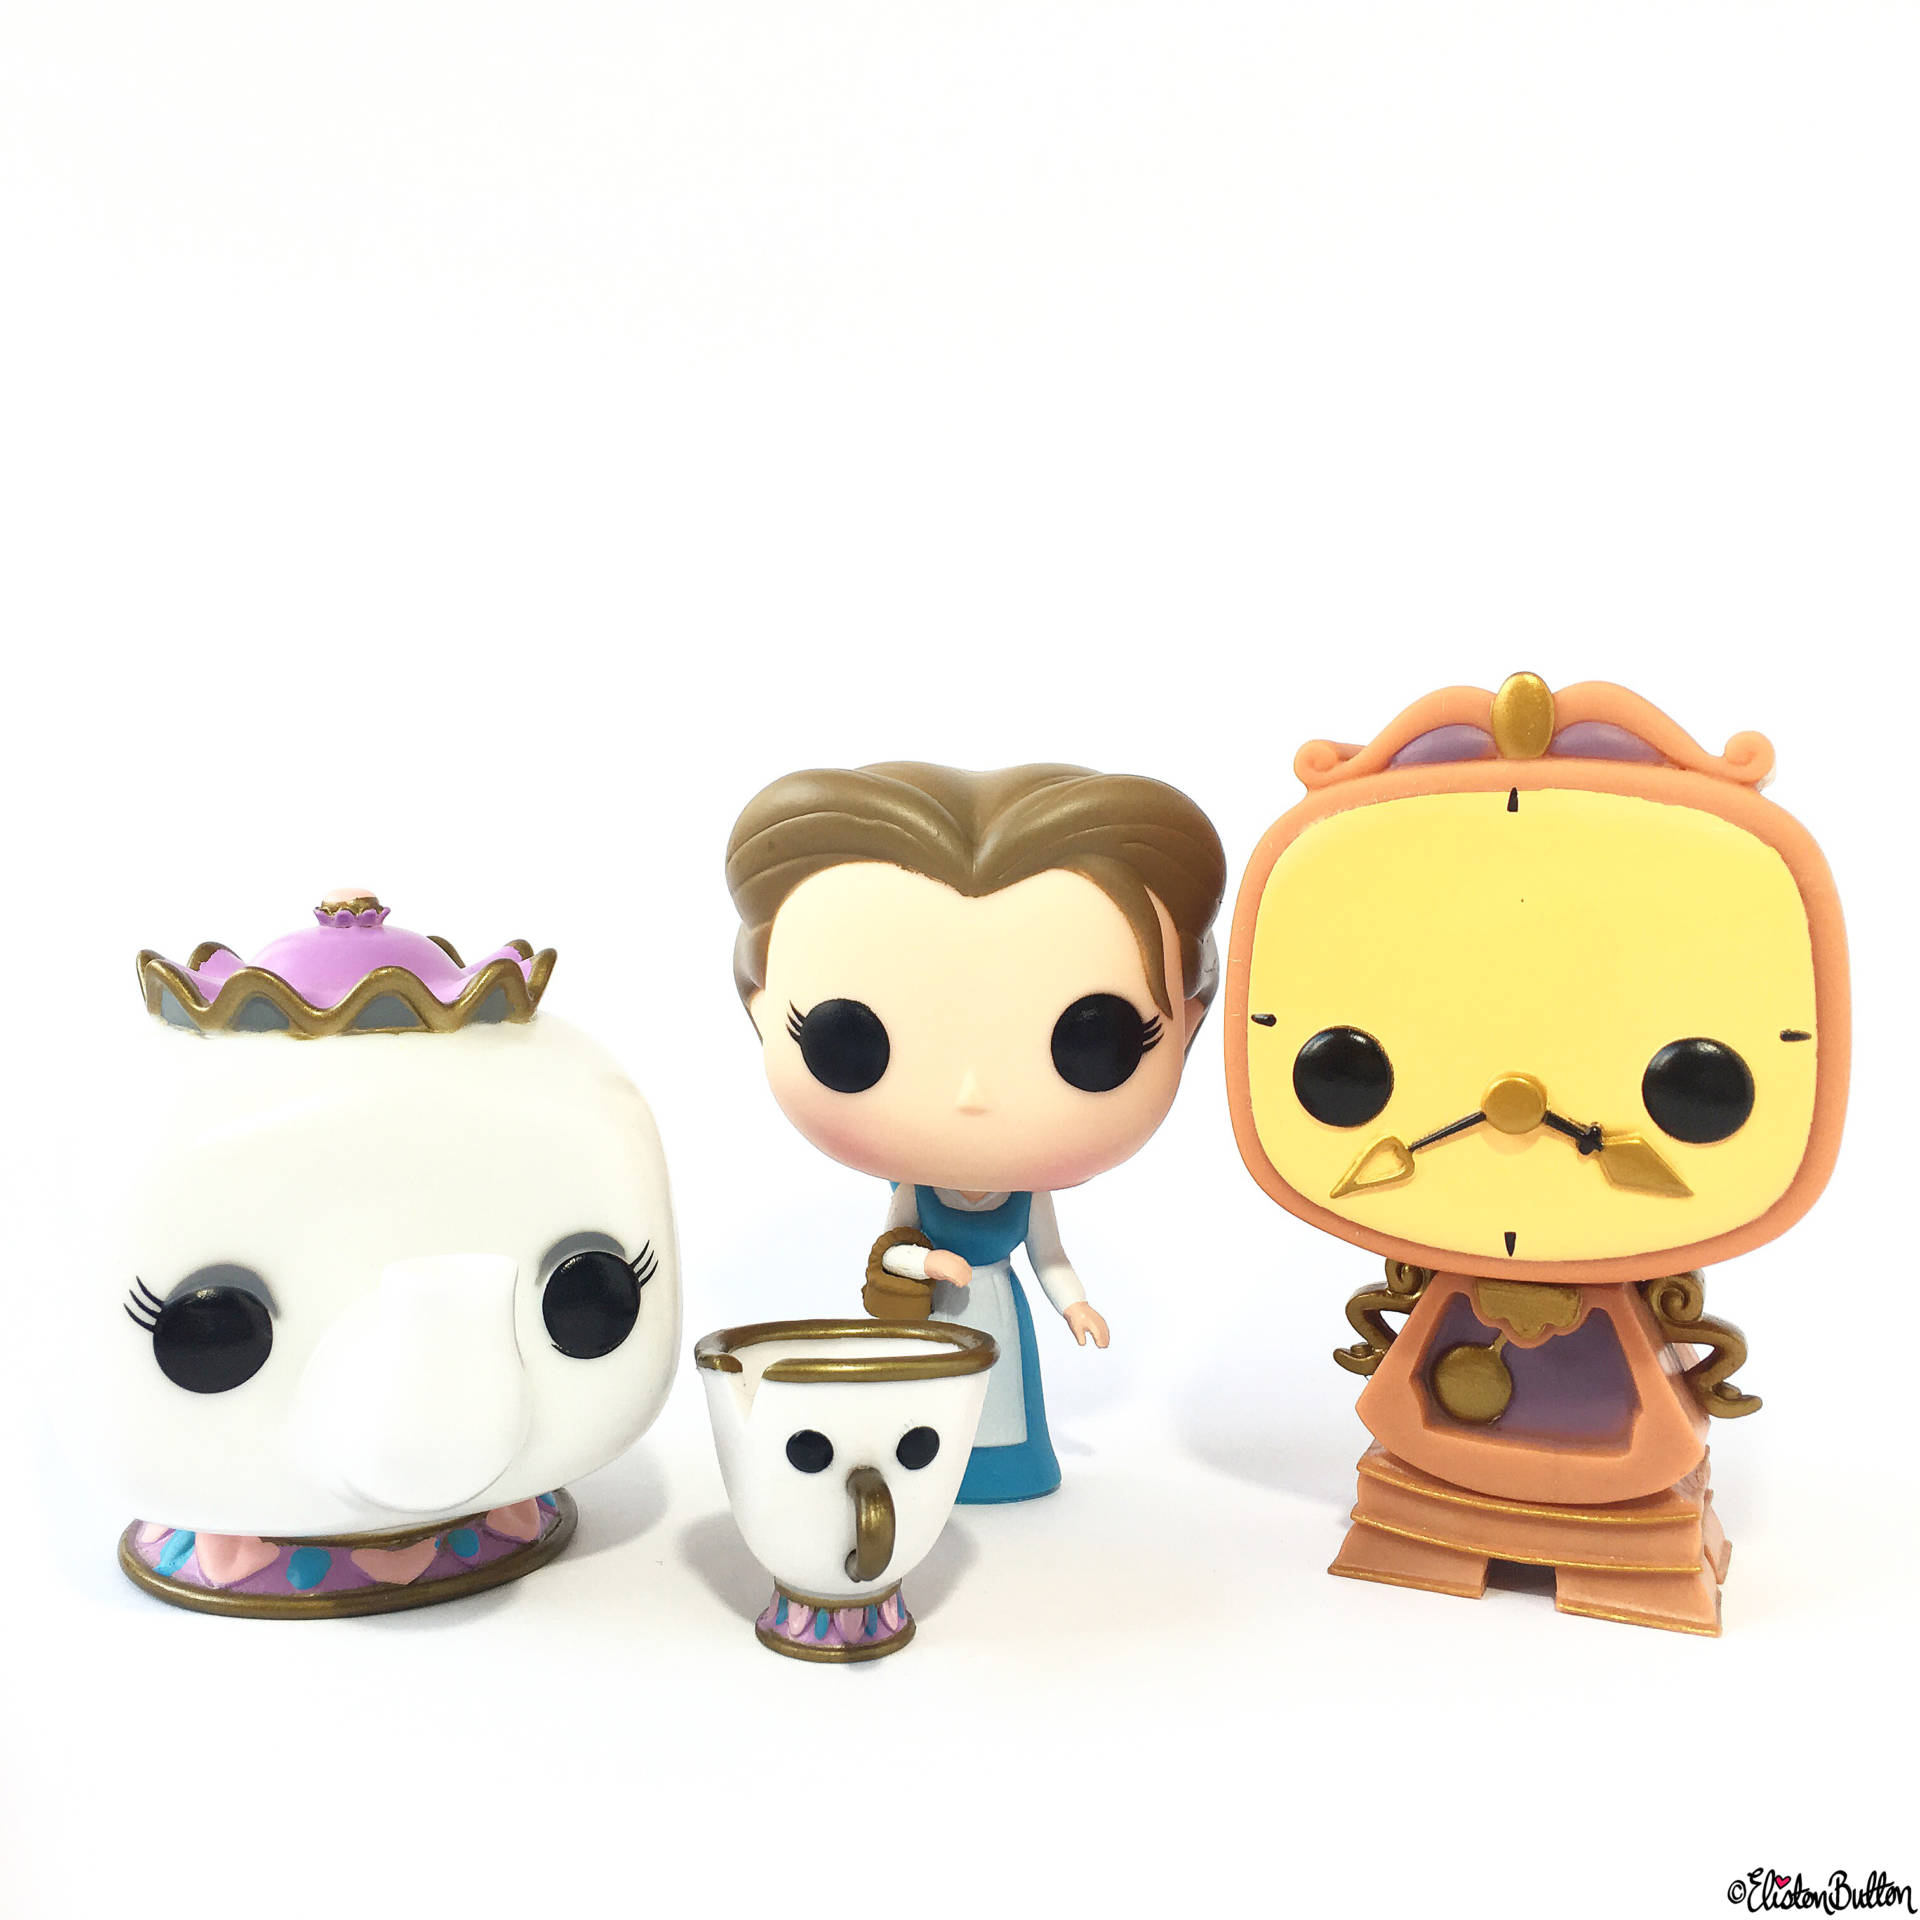 Day 25 - Out of the Box - Beauty and the Beast Funko Vinyl Pop Figures - Photo-a-Day – April 2016 at www.elistonbutton.com - Eliston Button - That Crafty Kid – Art, Design, Craft & Adventure.